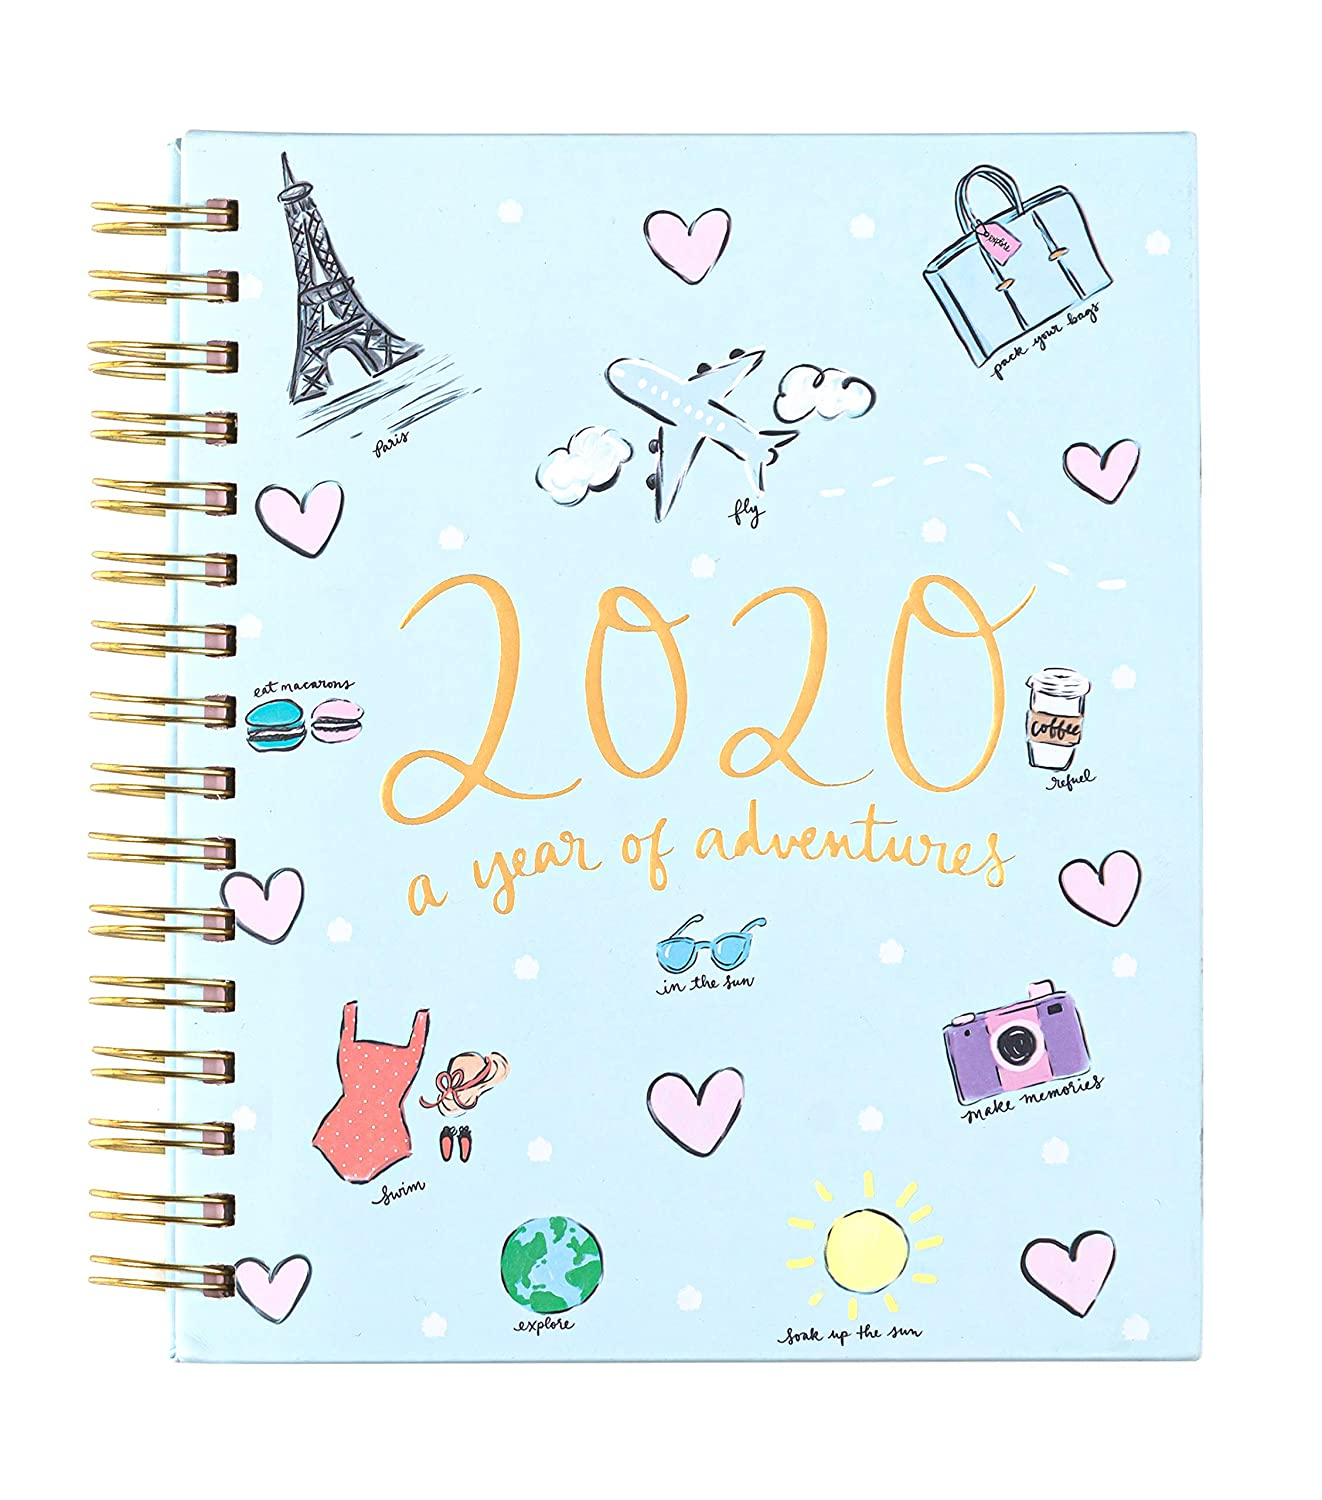 """2019-2020 Eccolo Spiral Agenda Planner, Dayna Lee """"Adventures"""", Hardcover, Weekly & Monthly Views, 18 Months, Sticker Sheets, Full Color Graphics and ..."""